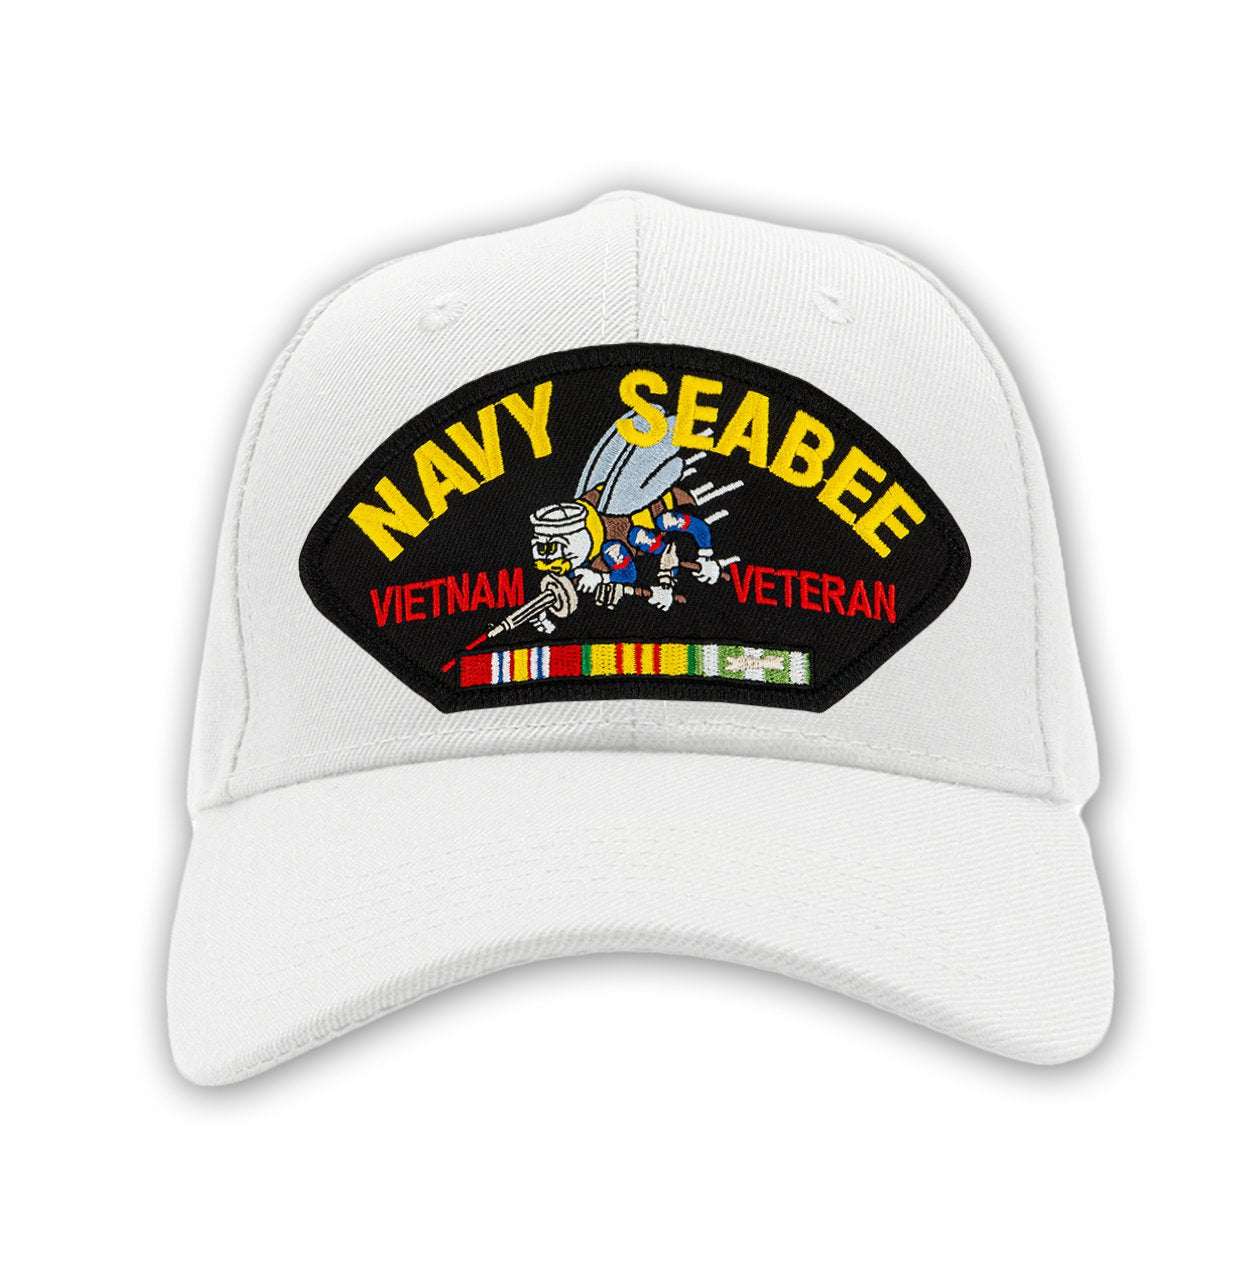 US Navy Seabee - Vietnam War Veteran Hat - Multiple Colors Available